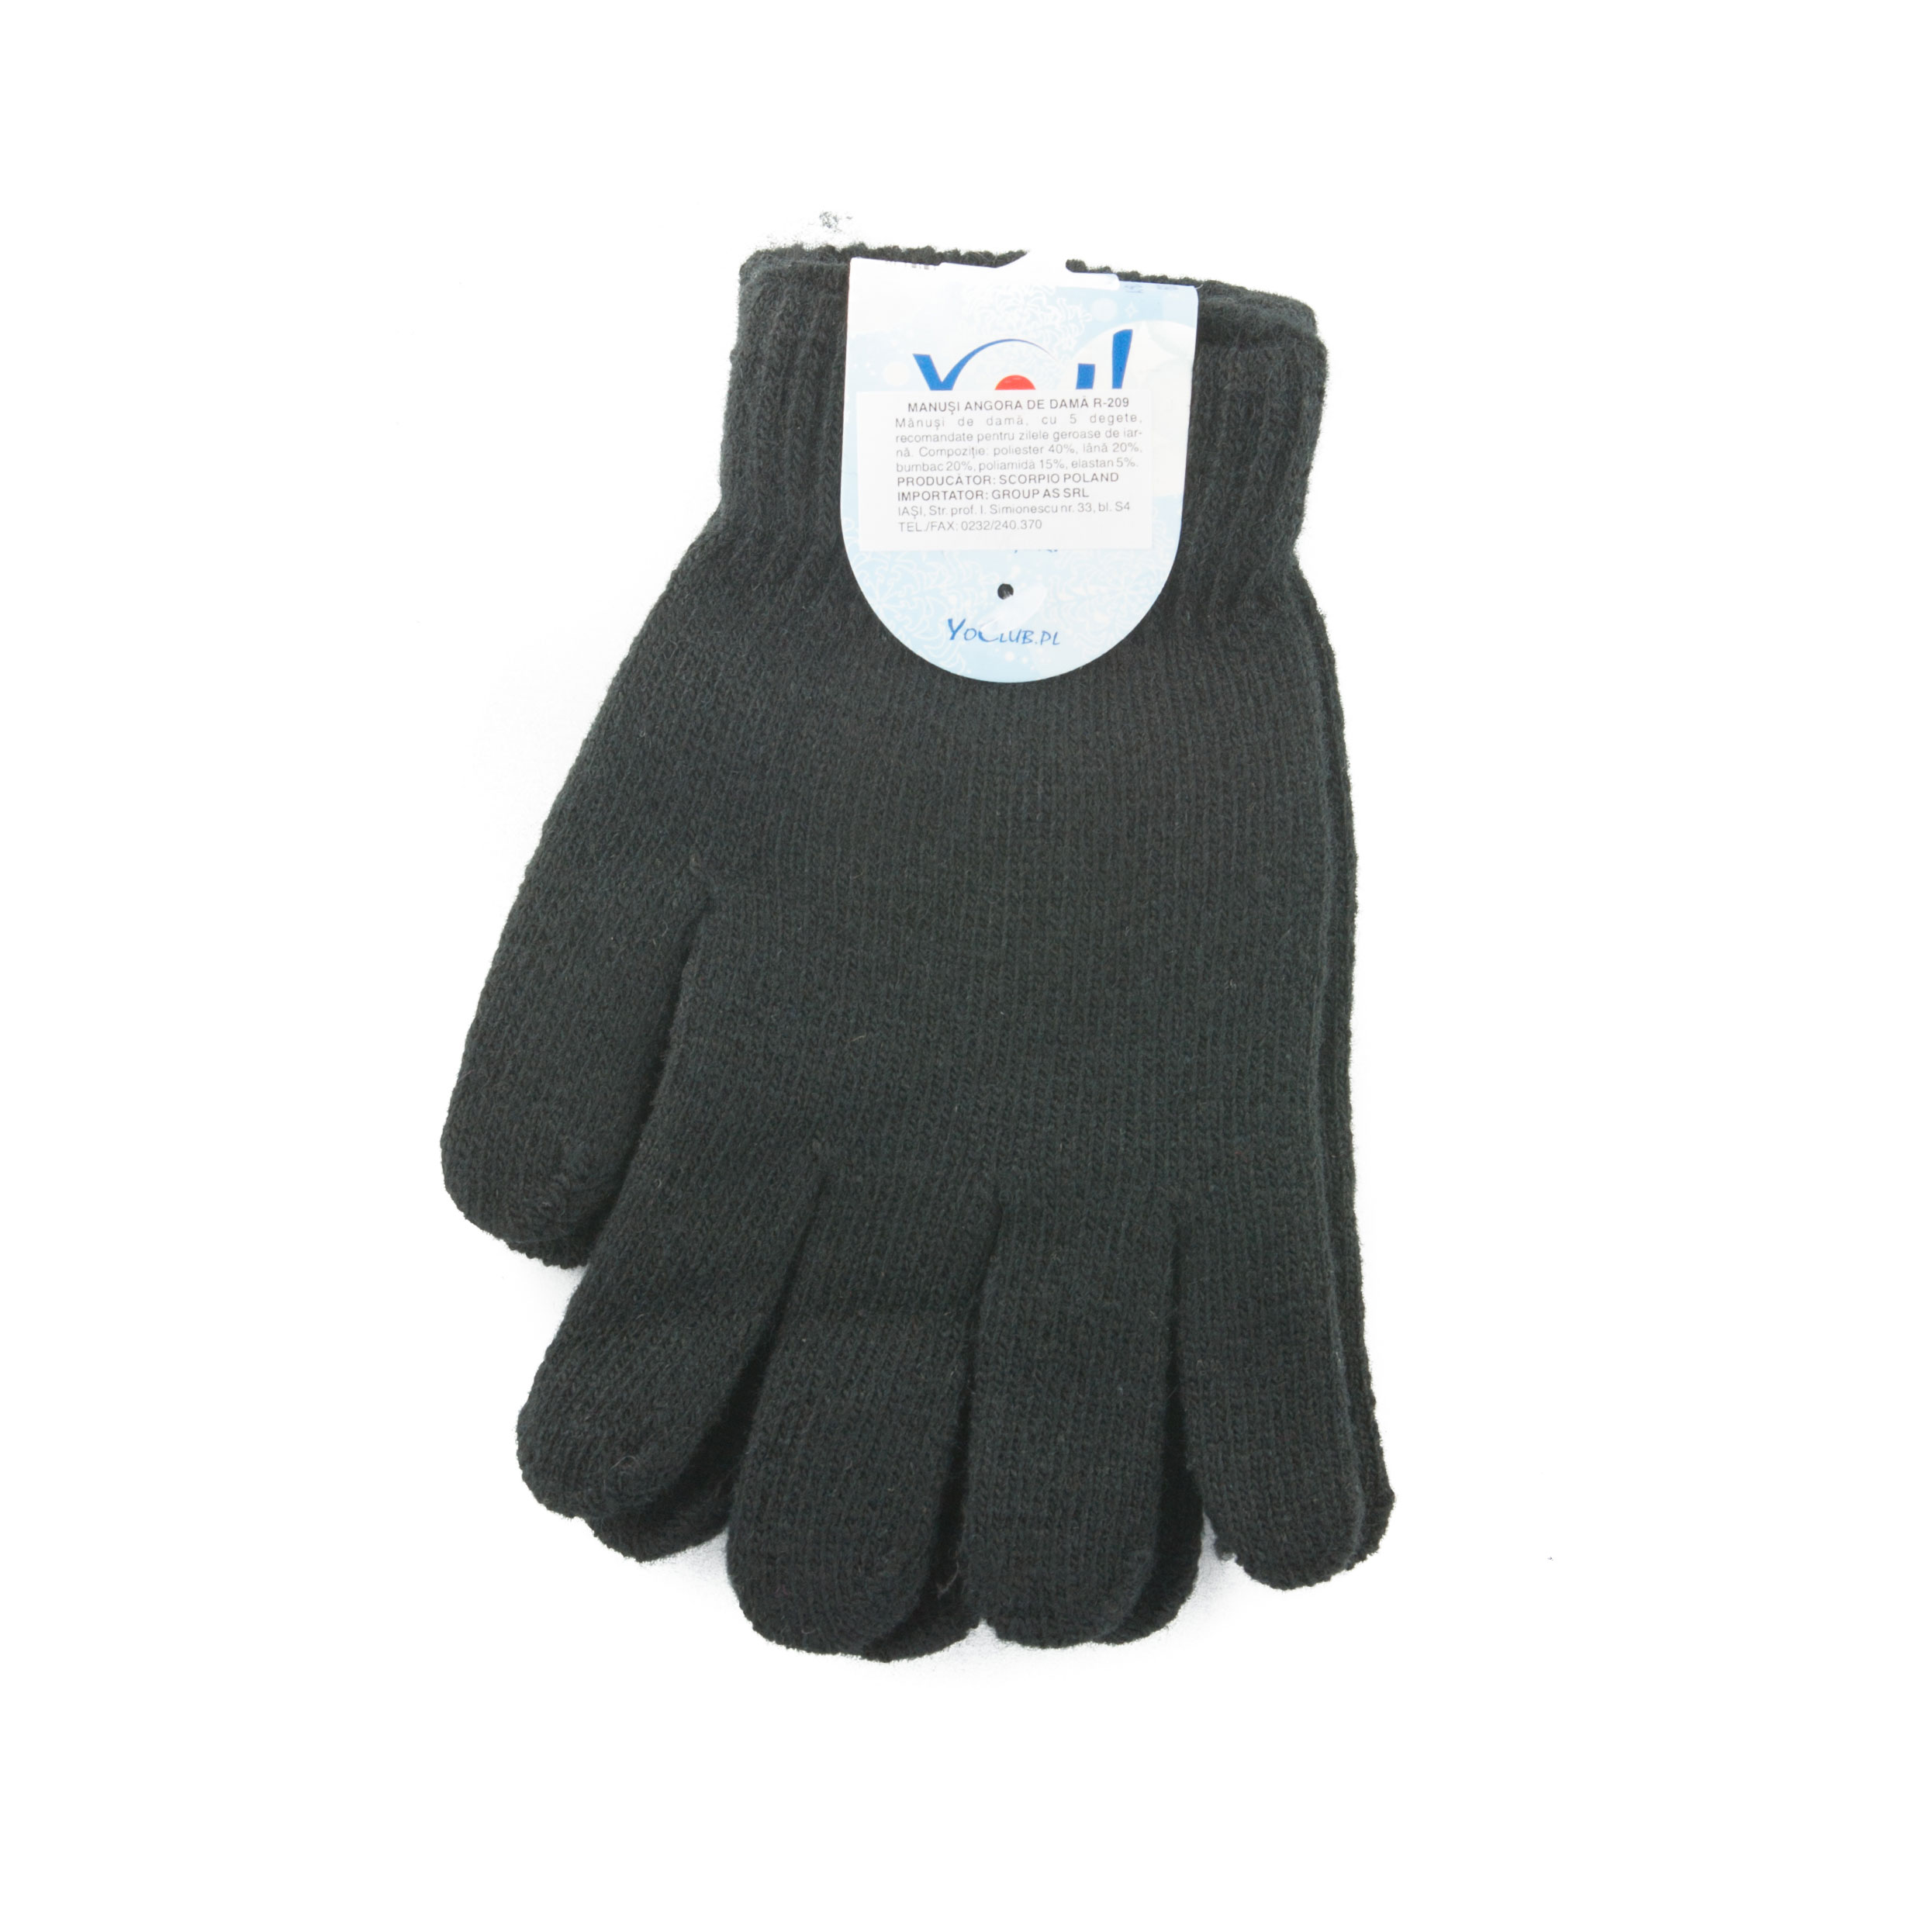 Angora wool gloves R209